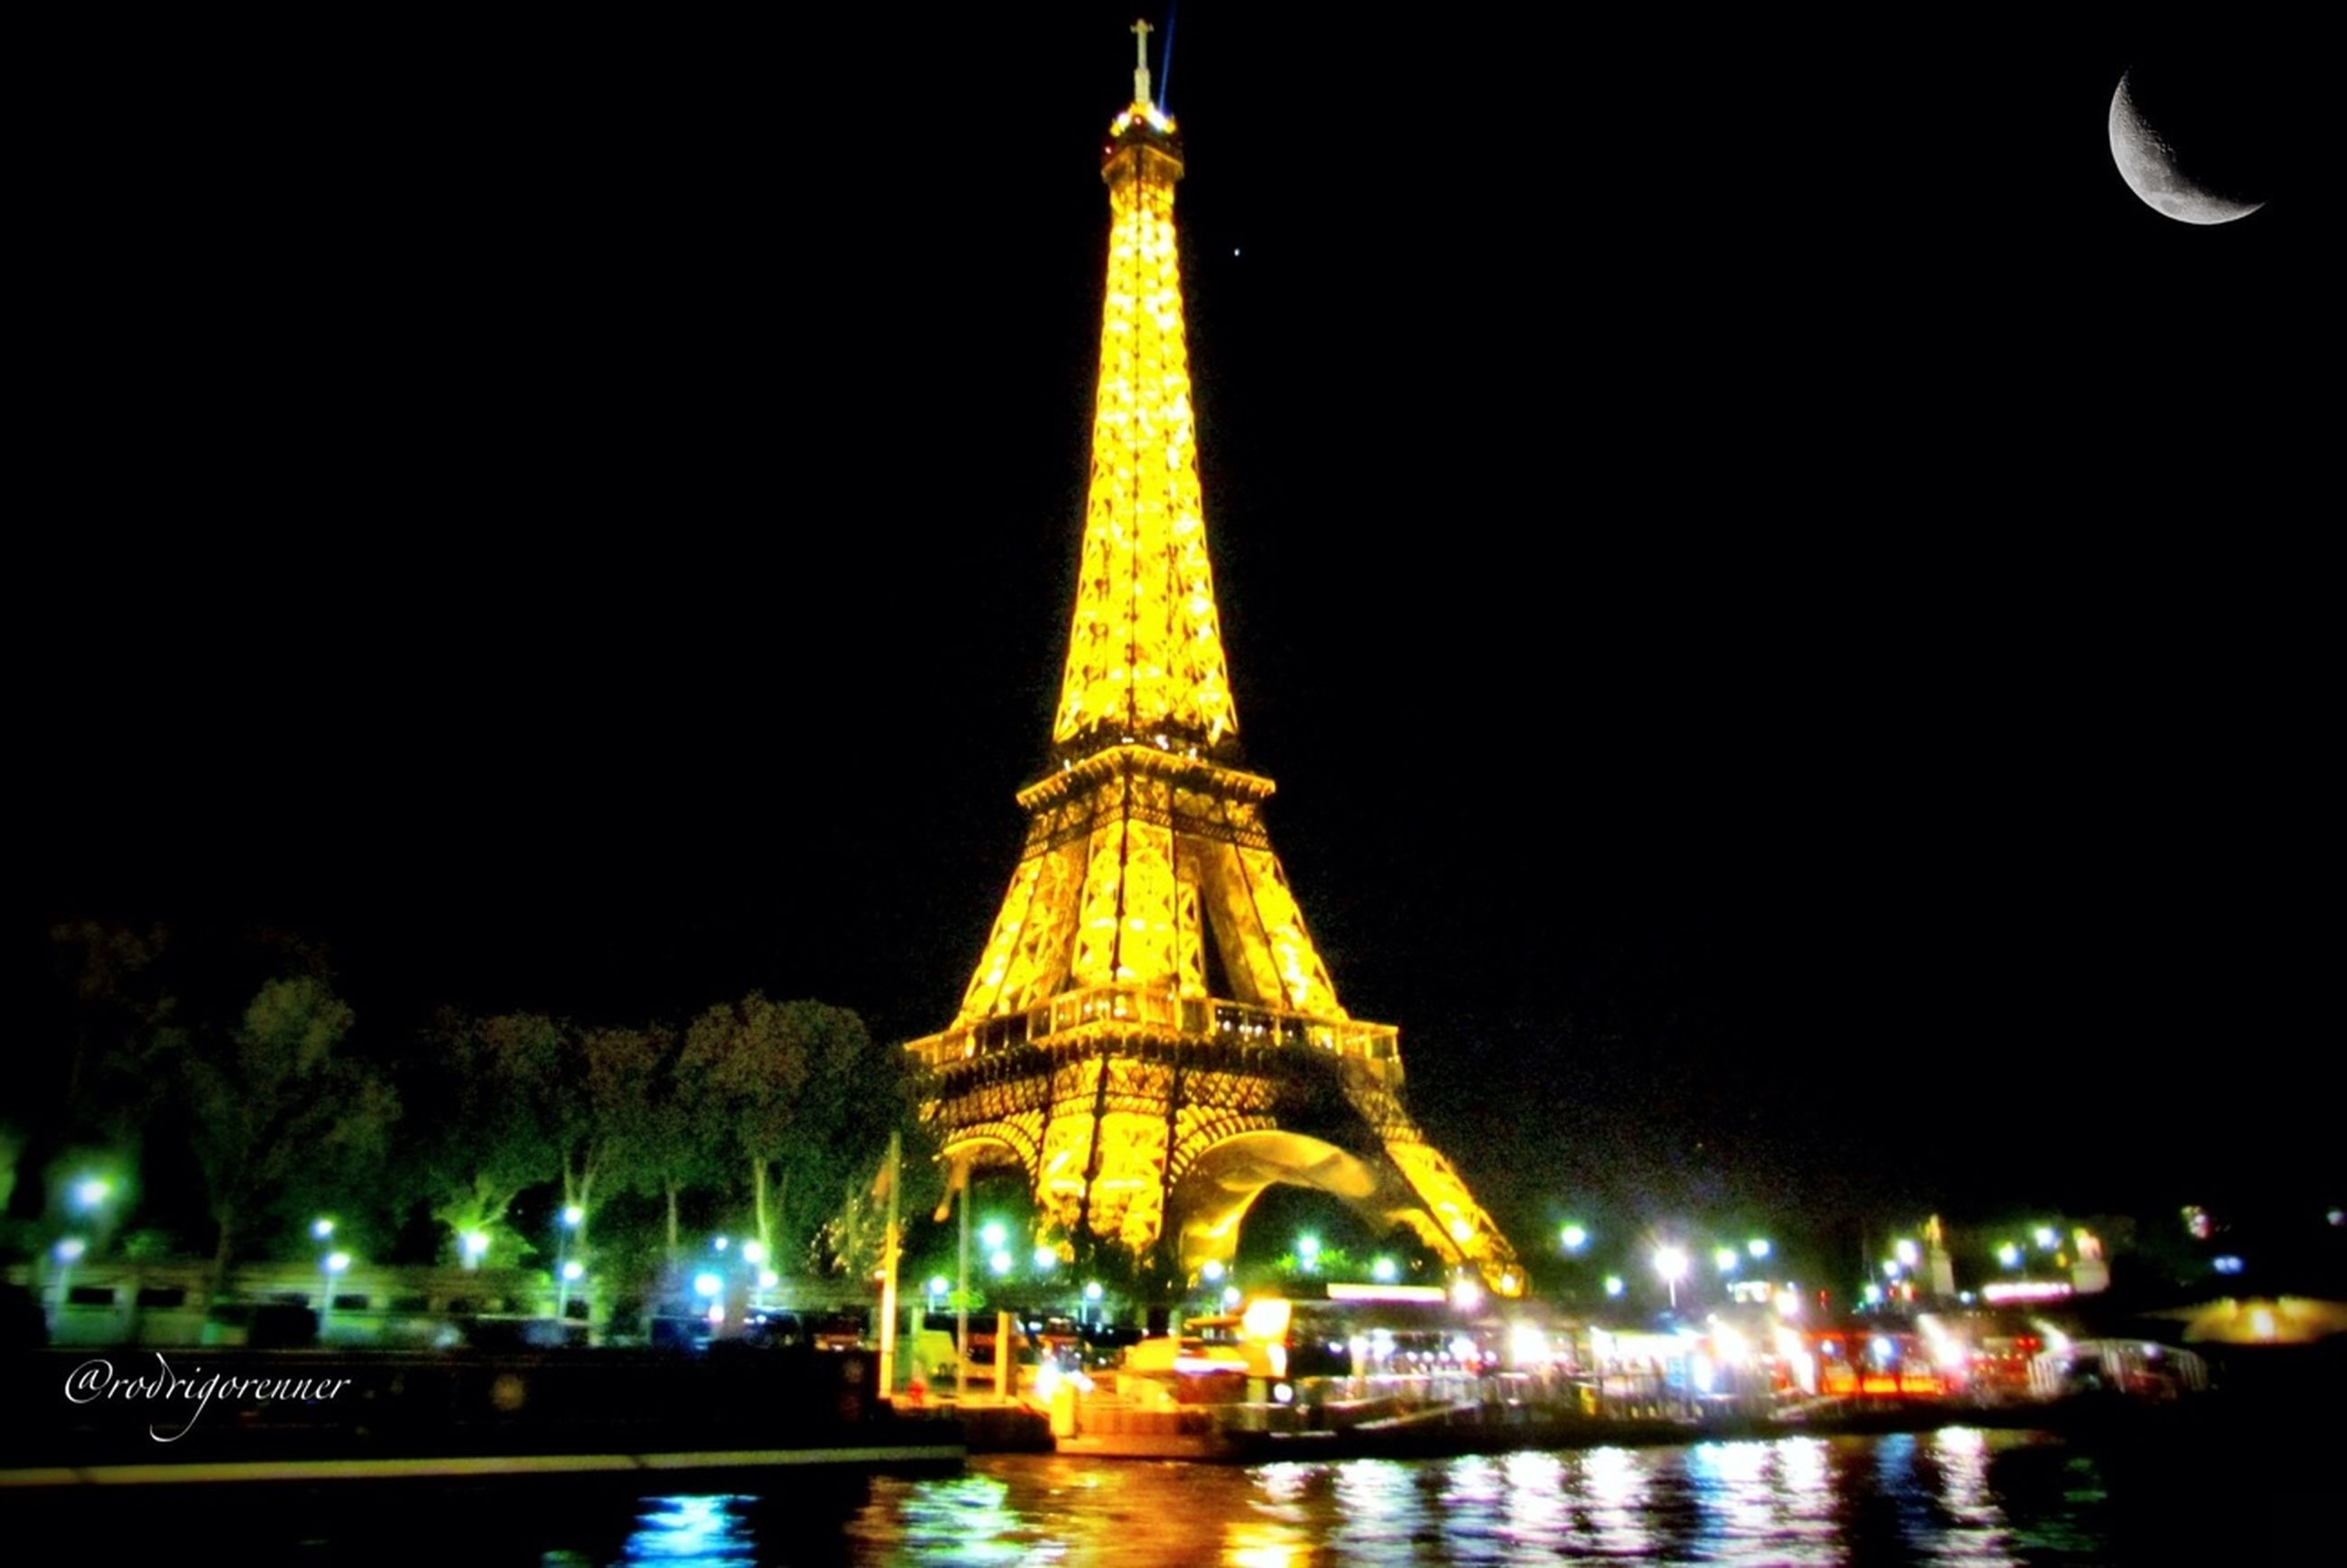 illuminated, night, architecture, famous place, travel destinations, built structure, international landmark, water, tourism, travel, building exterior, capital cities, clear sky, waterfront, city, reflection, sky, religion, history, outdoors